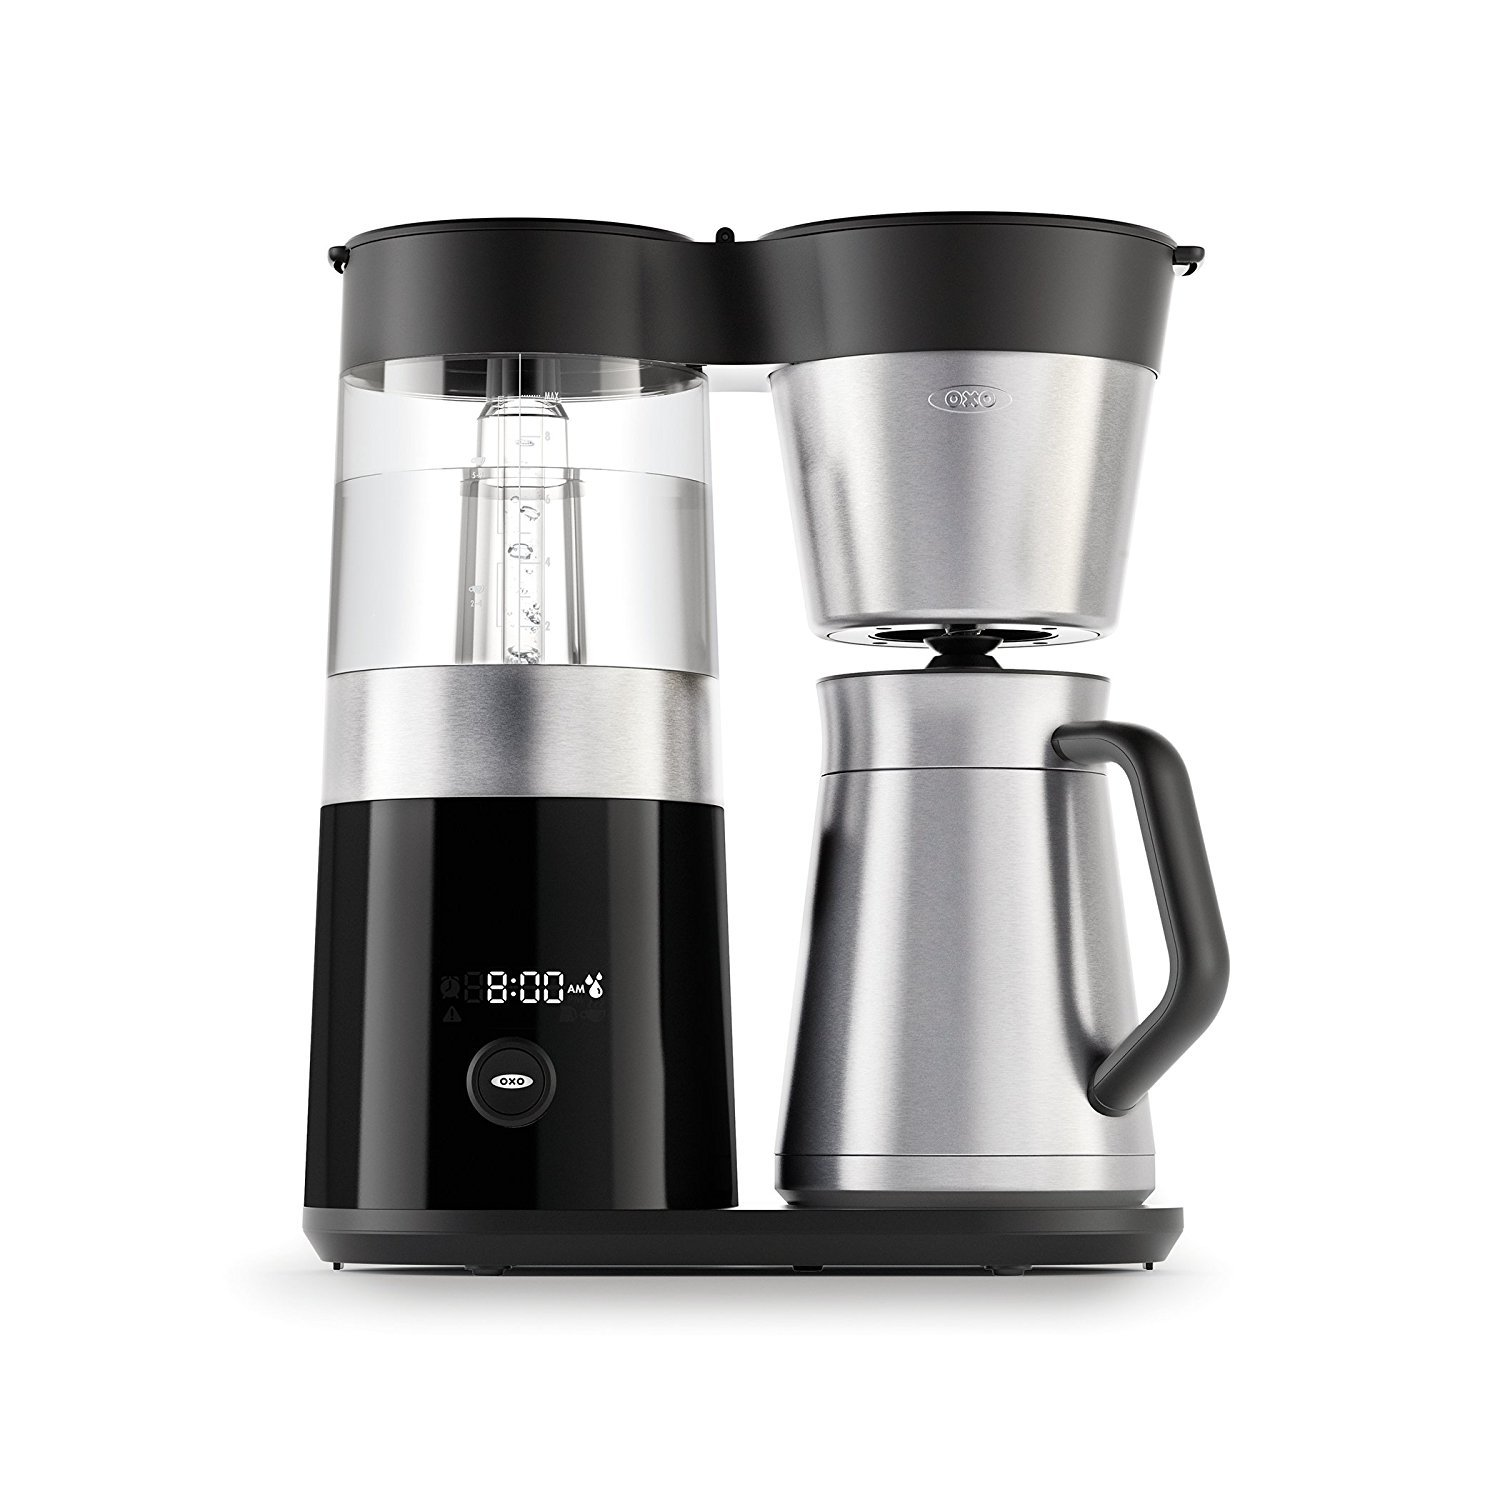 OXO On Barista Brain 9 Cup Coffee Maker by OXO (Image #8)